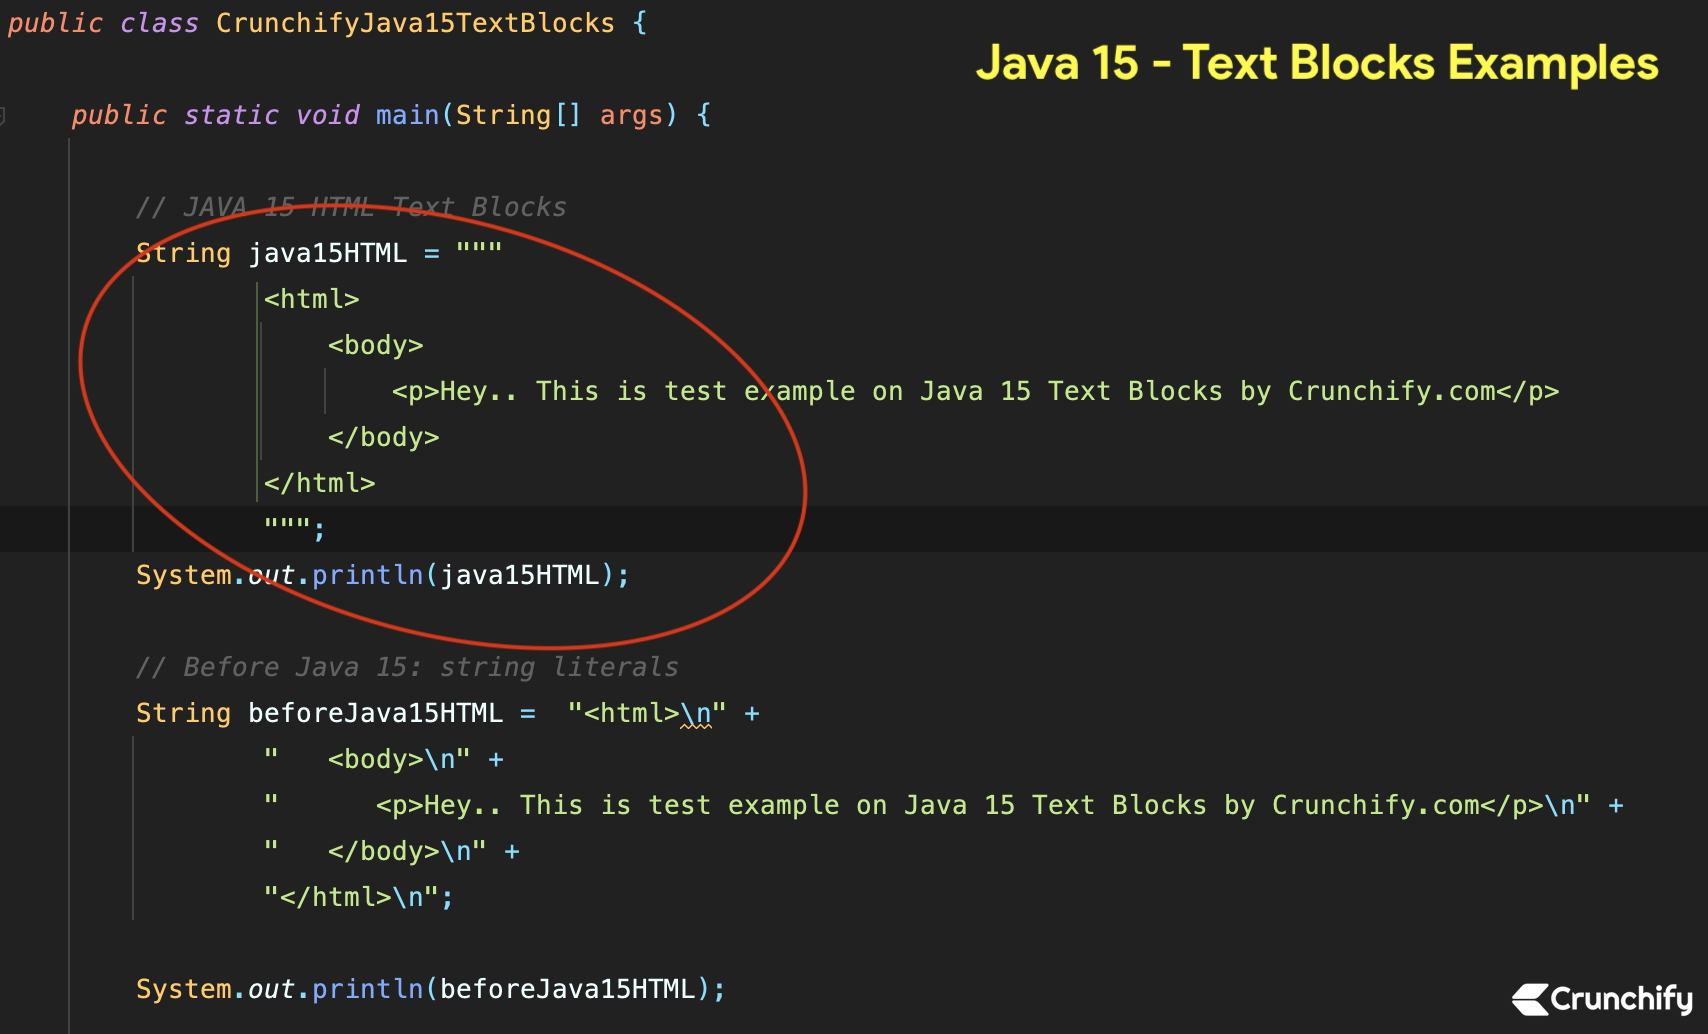 Java 15 - Text Blocks Examples by Crunchify.com